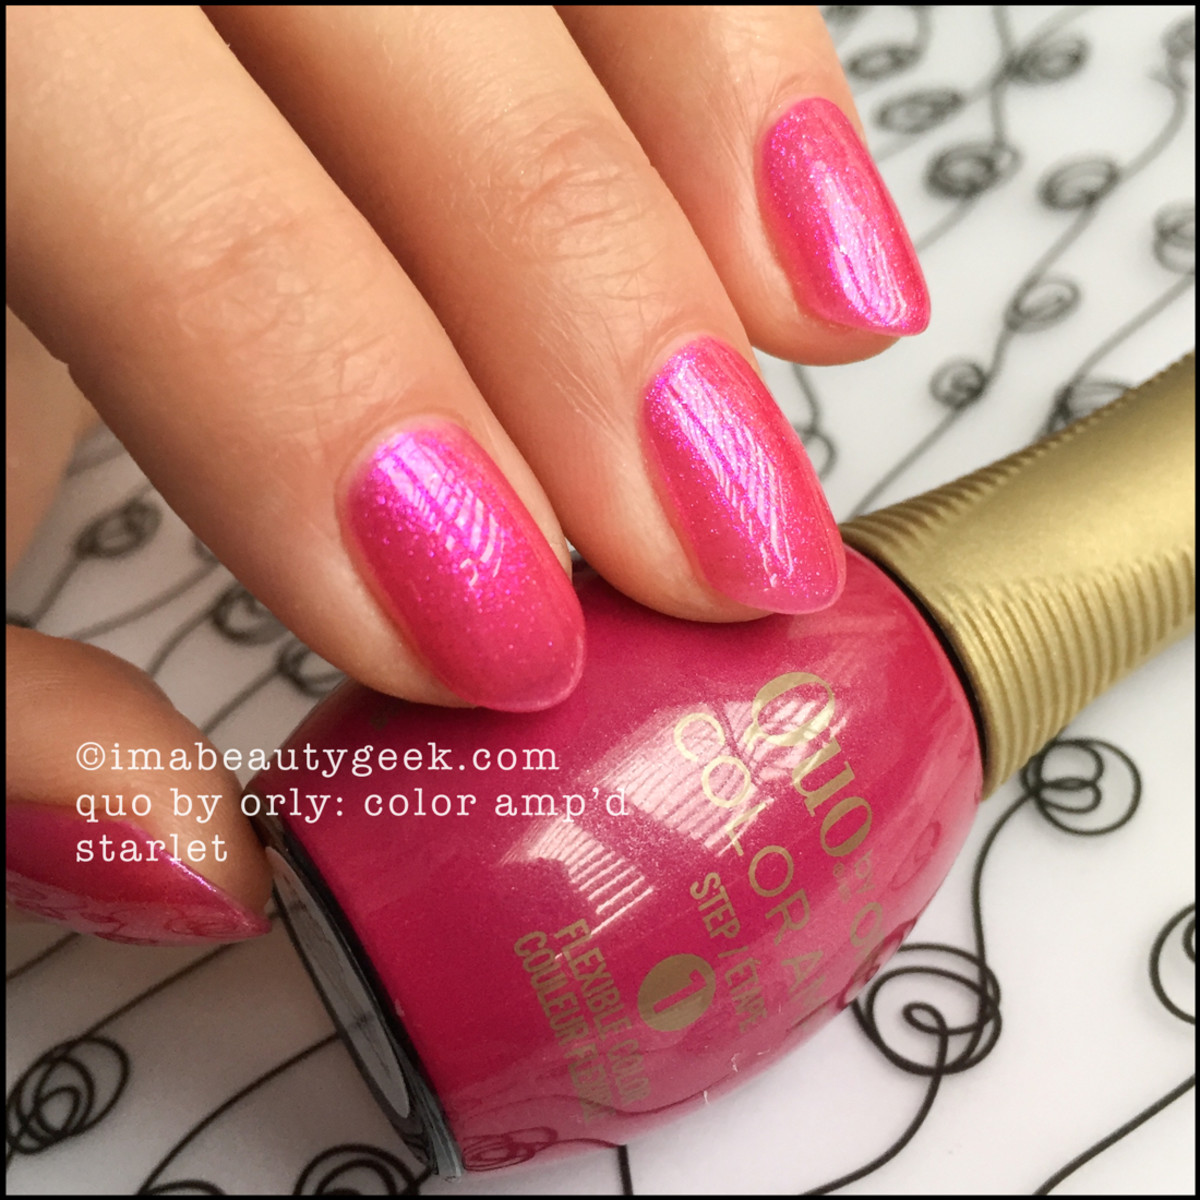 Quo by Orly Color Ampd Starlet Orly Epix Swatches